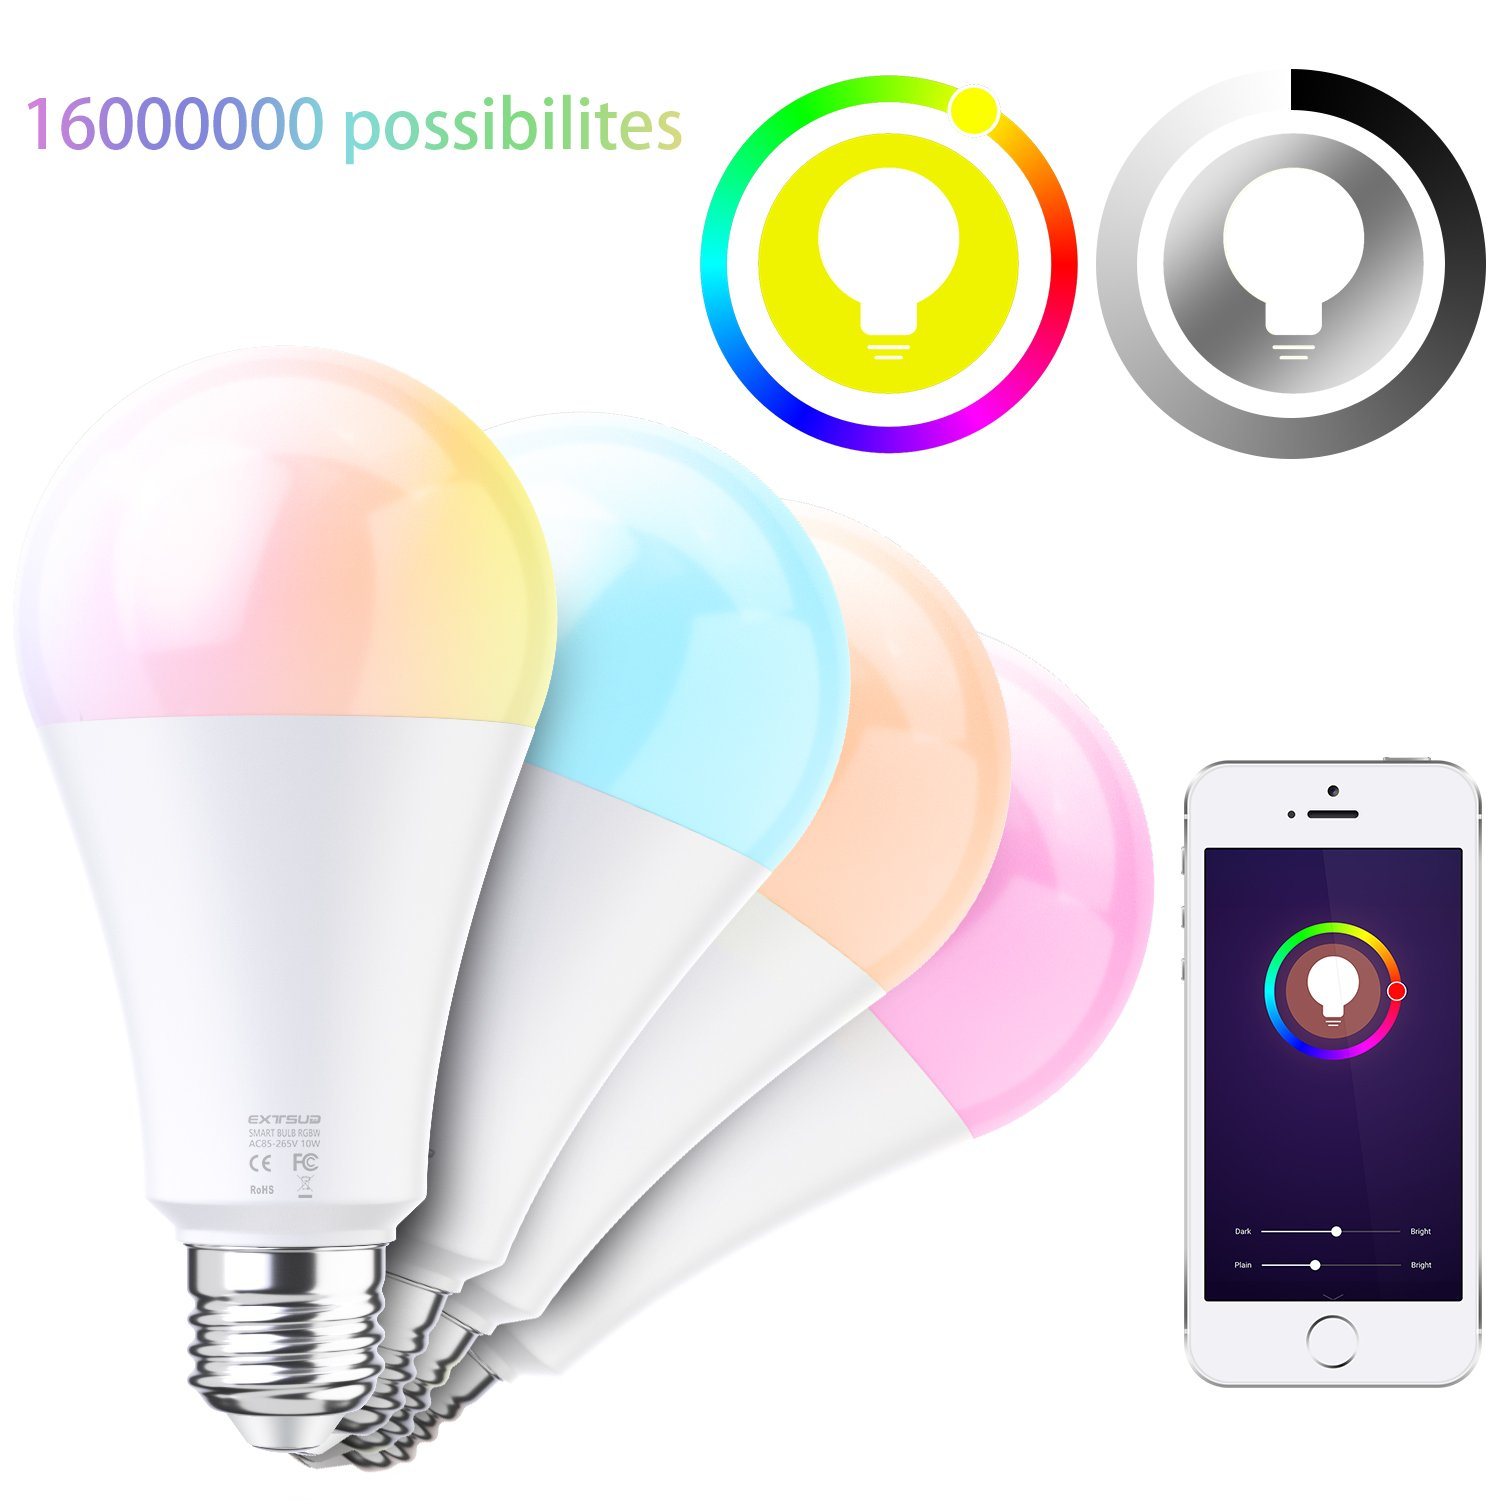 Led Bombilla Amazon Extsud Alexa Compatible Echo Inteligente Multicolor Wifi E27 Con 10w Regulable Intensidad htsQCdr